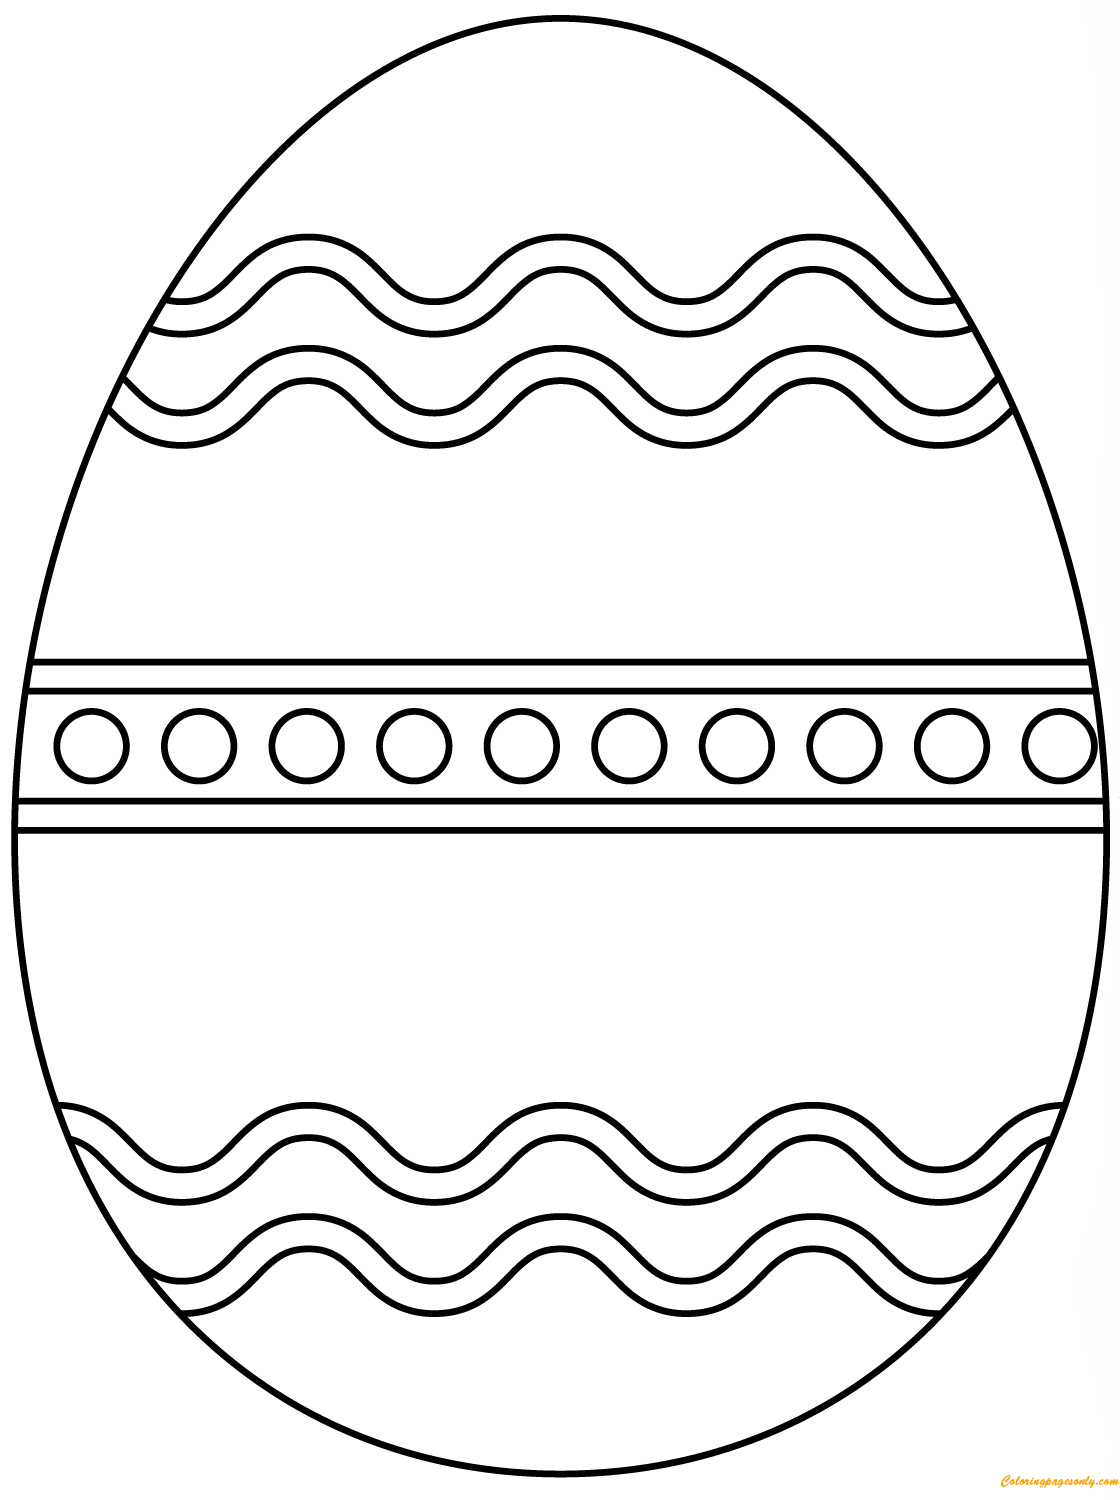 plain easter egg coloring pages plain easter egg coloring page  free coloring pages online egg easter plain pages coloring